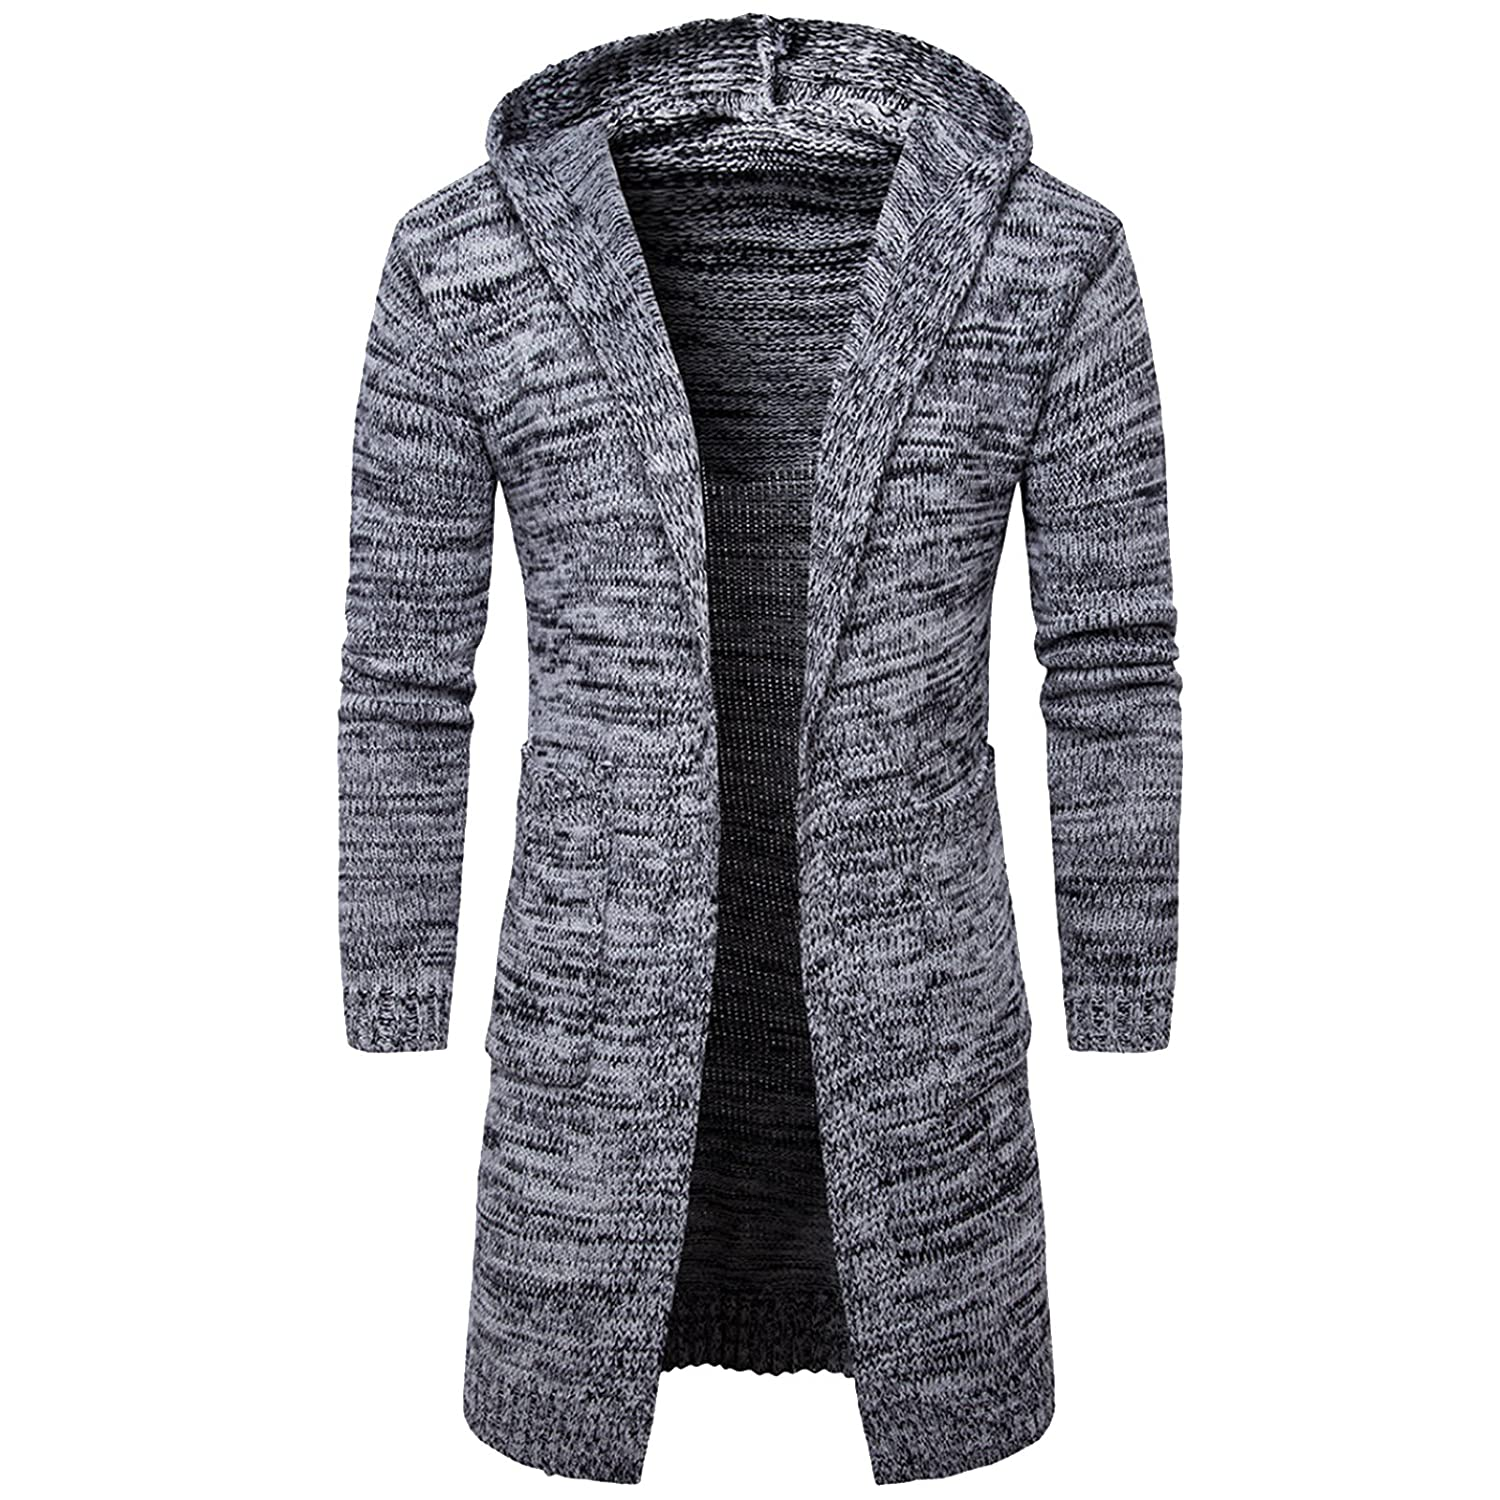 ZumZup Mens Spring Outerwear Slim With Hood Long Sweater Casual Long Cardigan Hooded Knitted Open Edge Thicker Cardigan